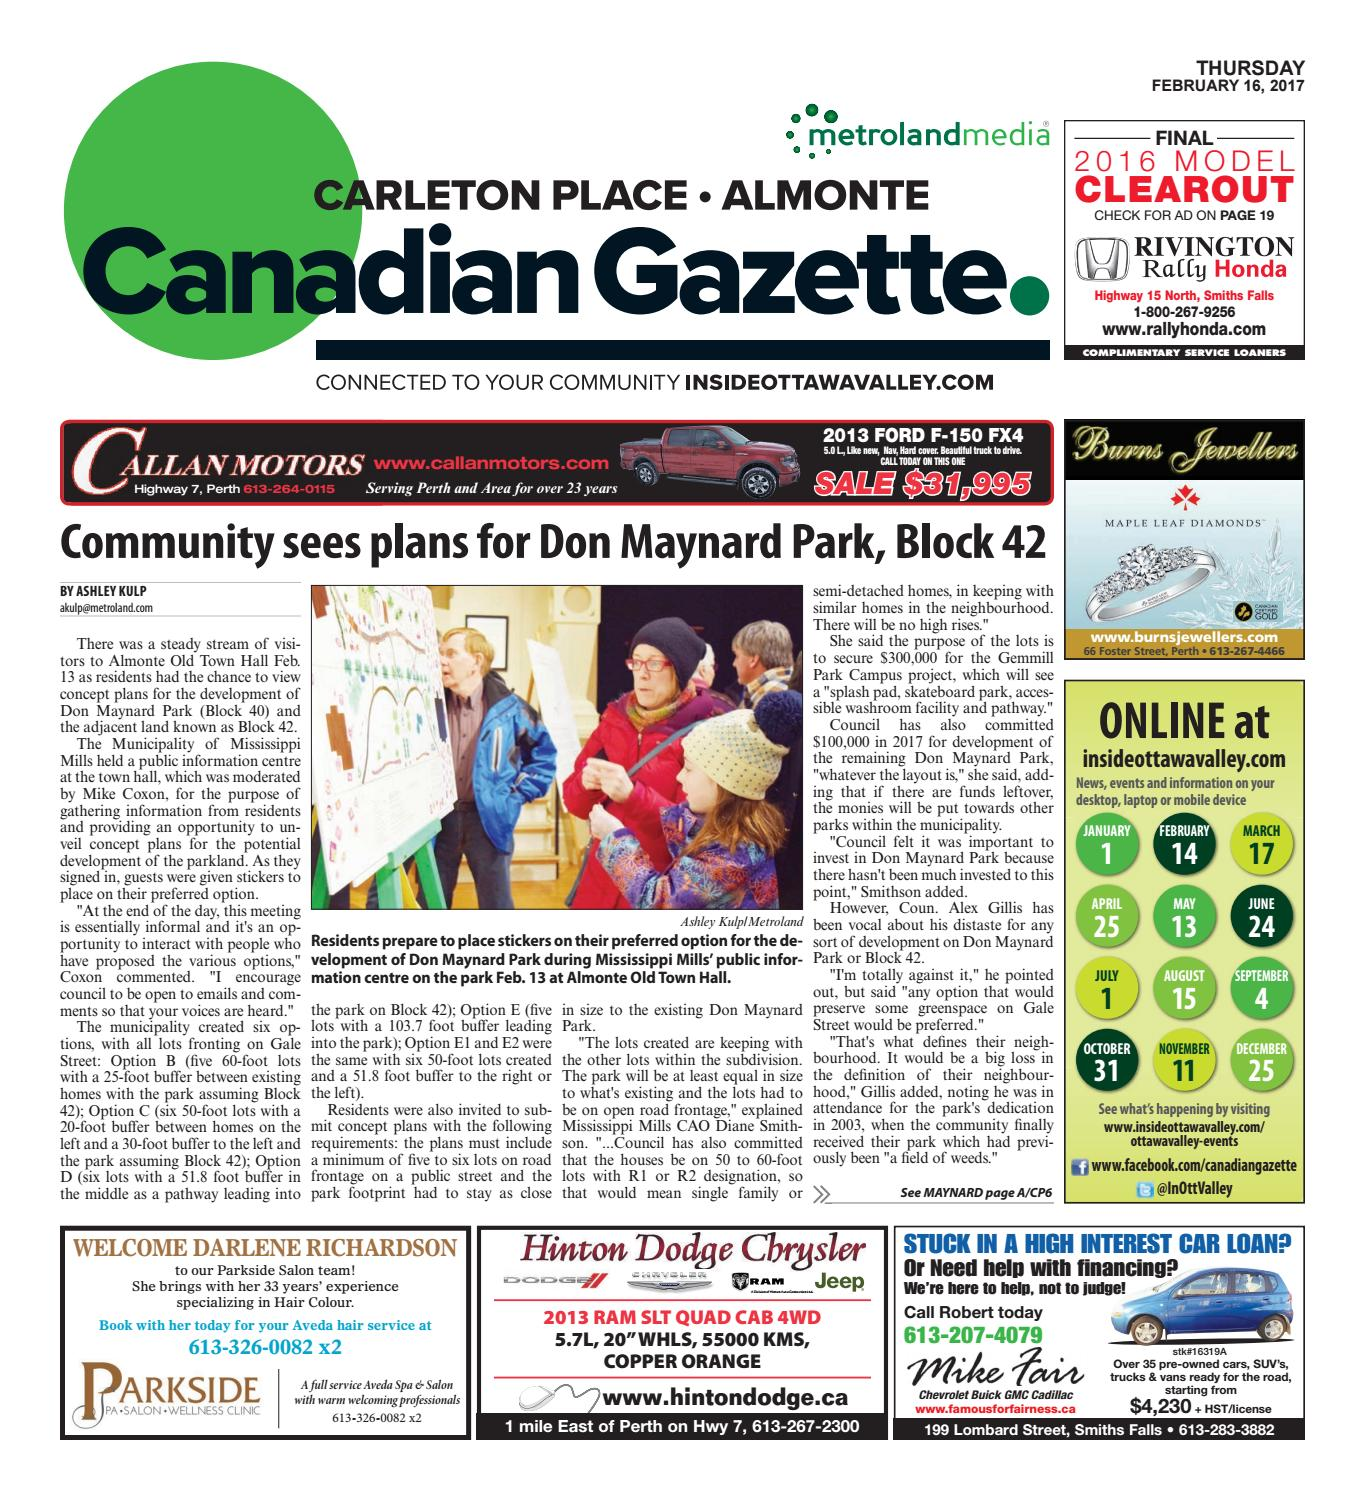 Almontecarletonplace021617 by metroland east almonte carleton almontecarletonplace021617 by metroland east almonte carleton place canadian gazette issuu fandeluxe Images